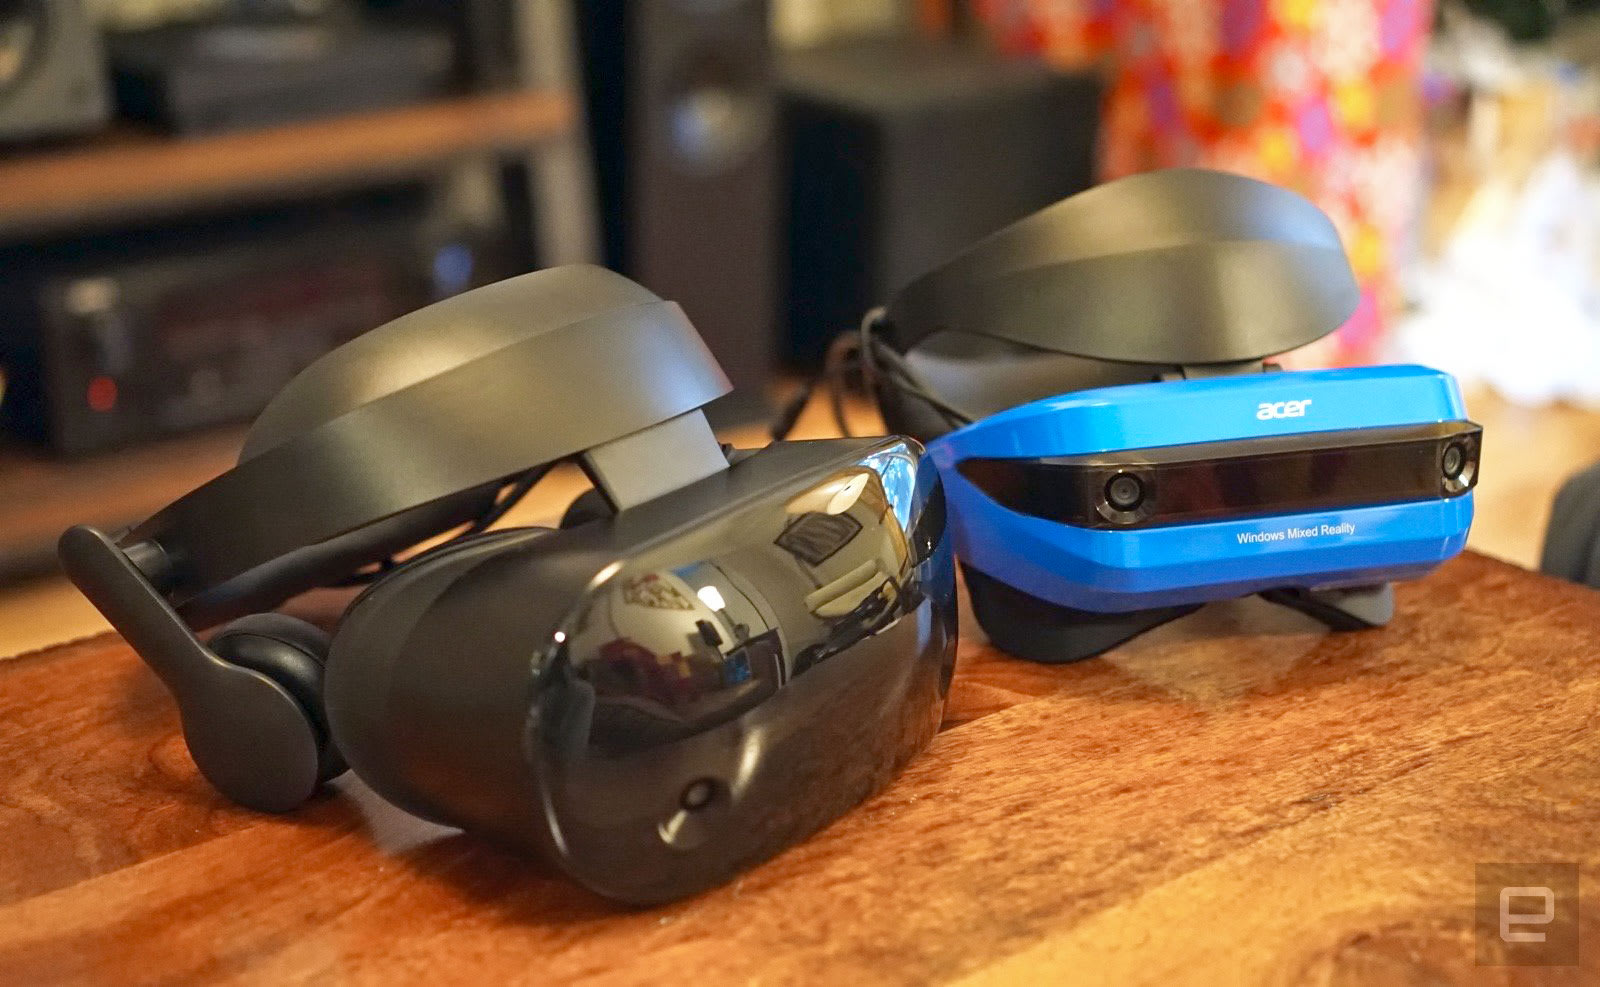 c18f89cdeae Samsung vs. Acer Mixed Reality headsets  Which handles VR best